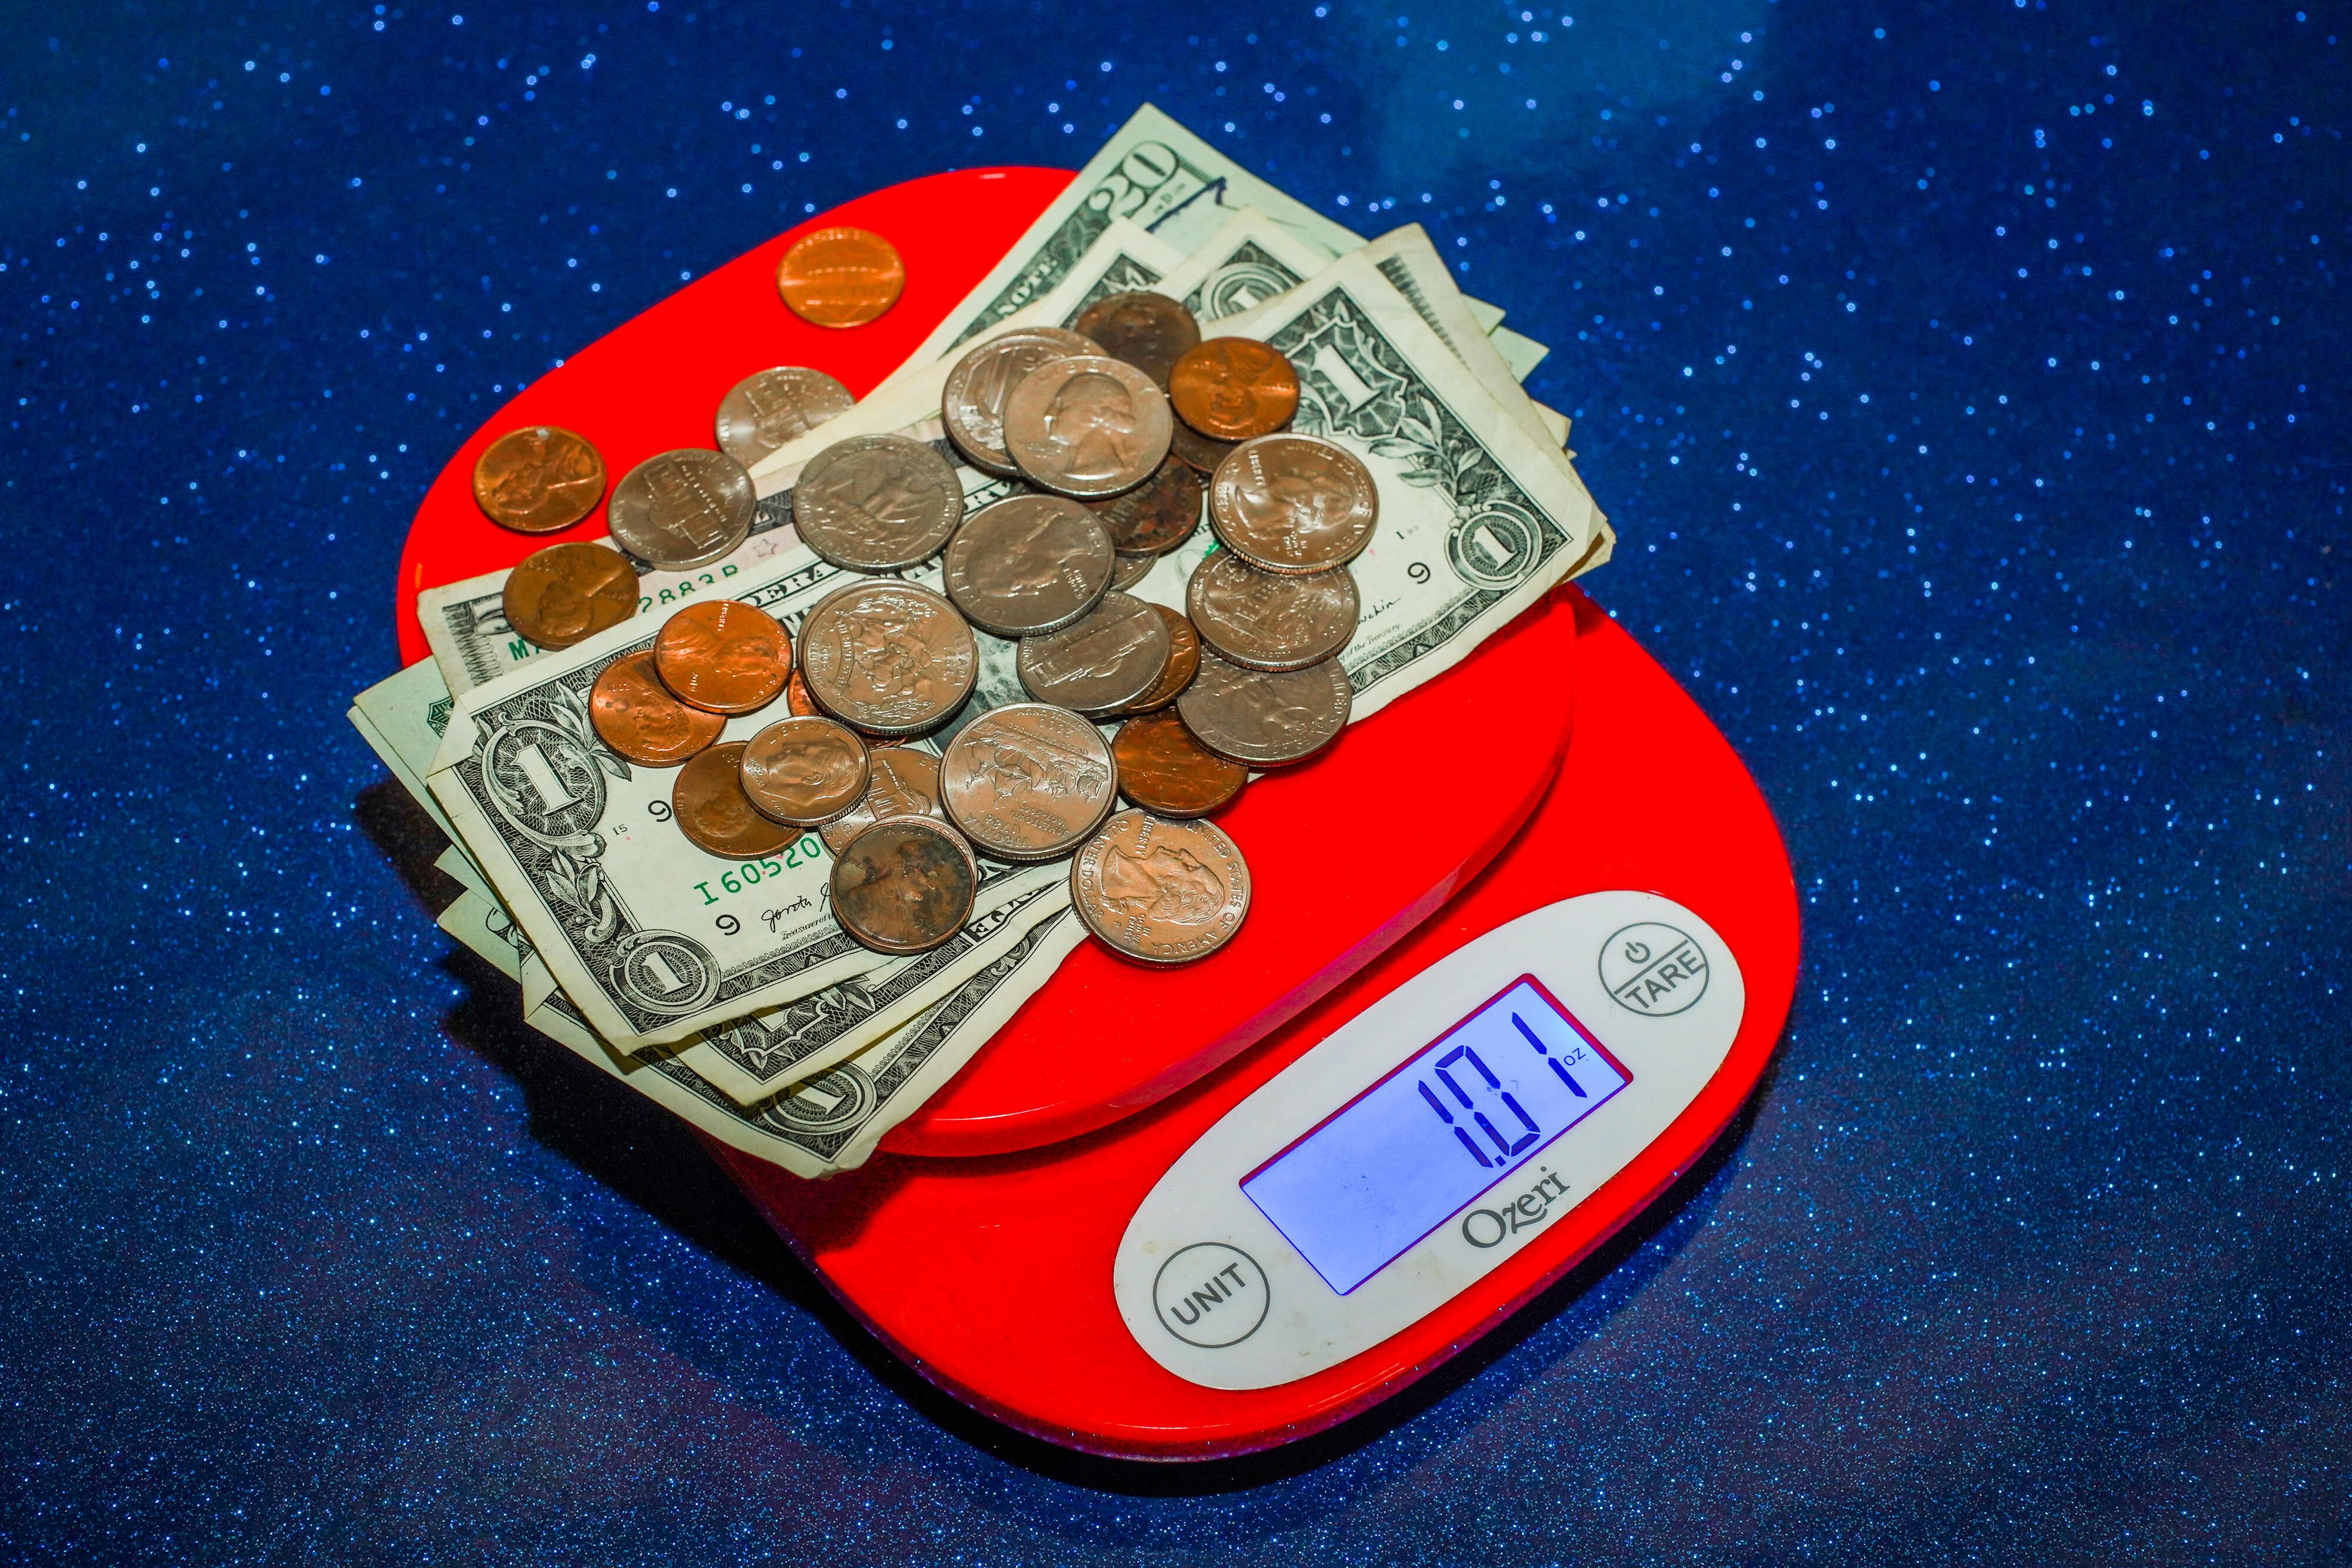 011-stimulus-piggy-bank-tear-falling-money-clip-weighing-cash-scale